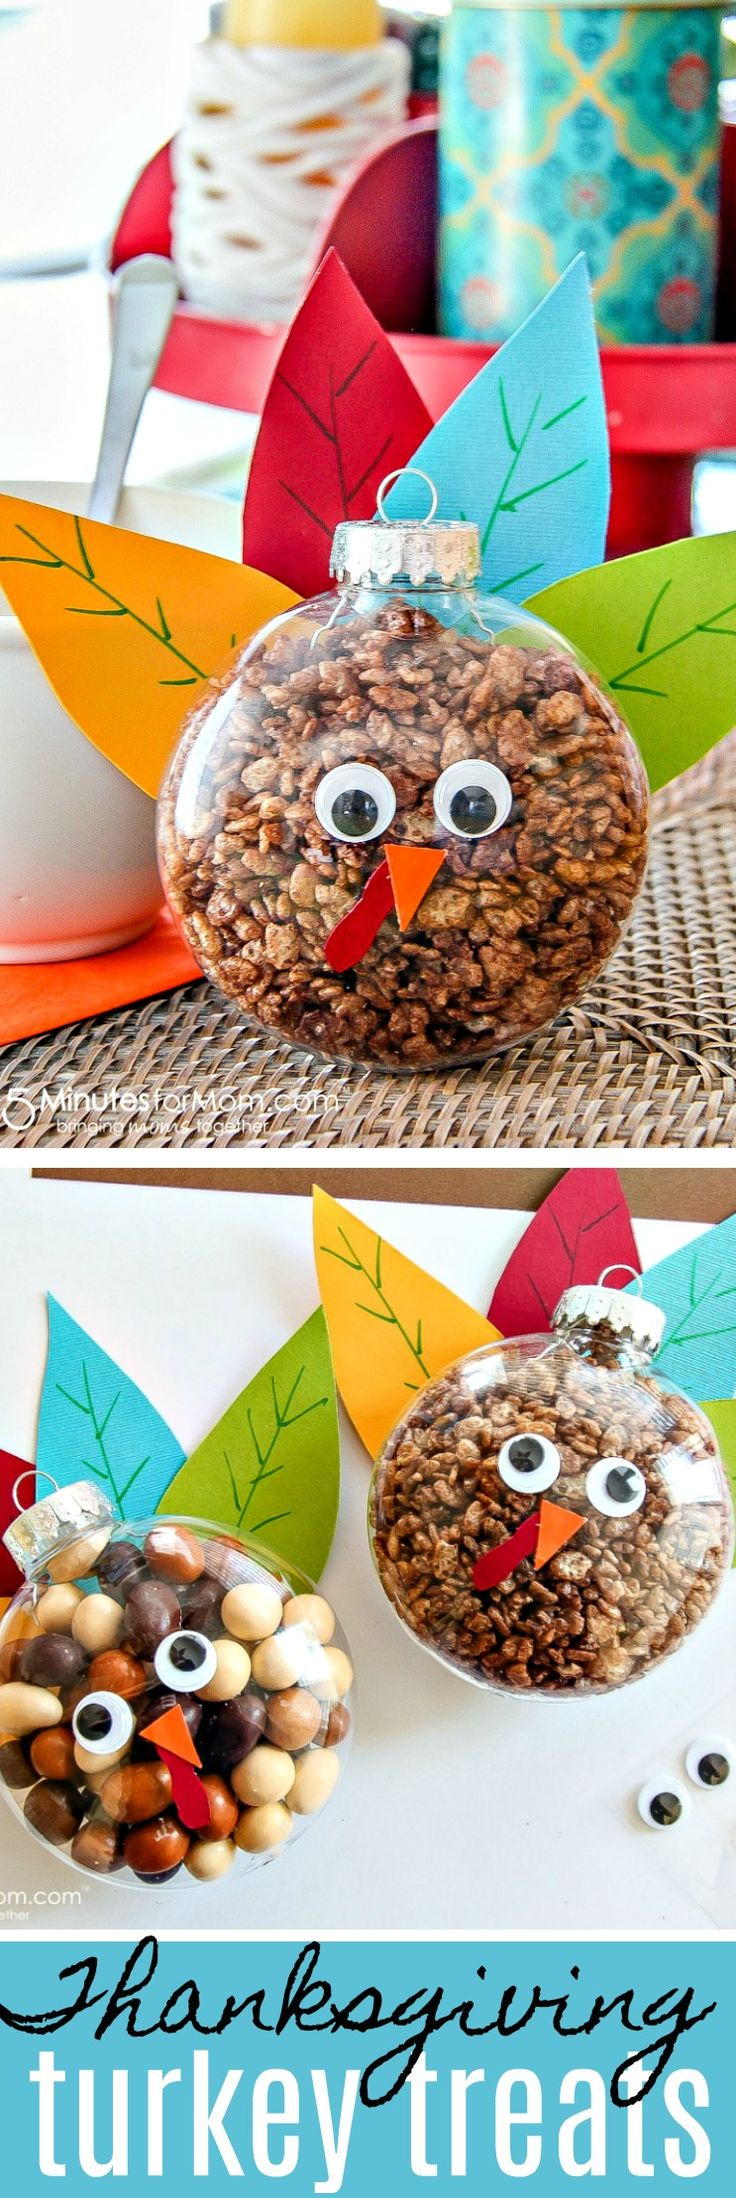 Turkey Treats for Thanksgiving - Easy Fall Craft